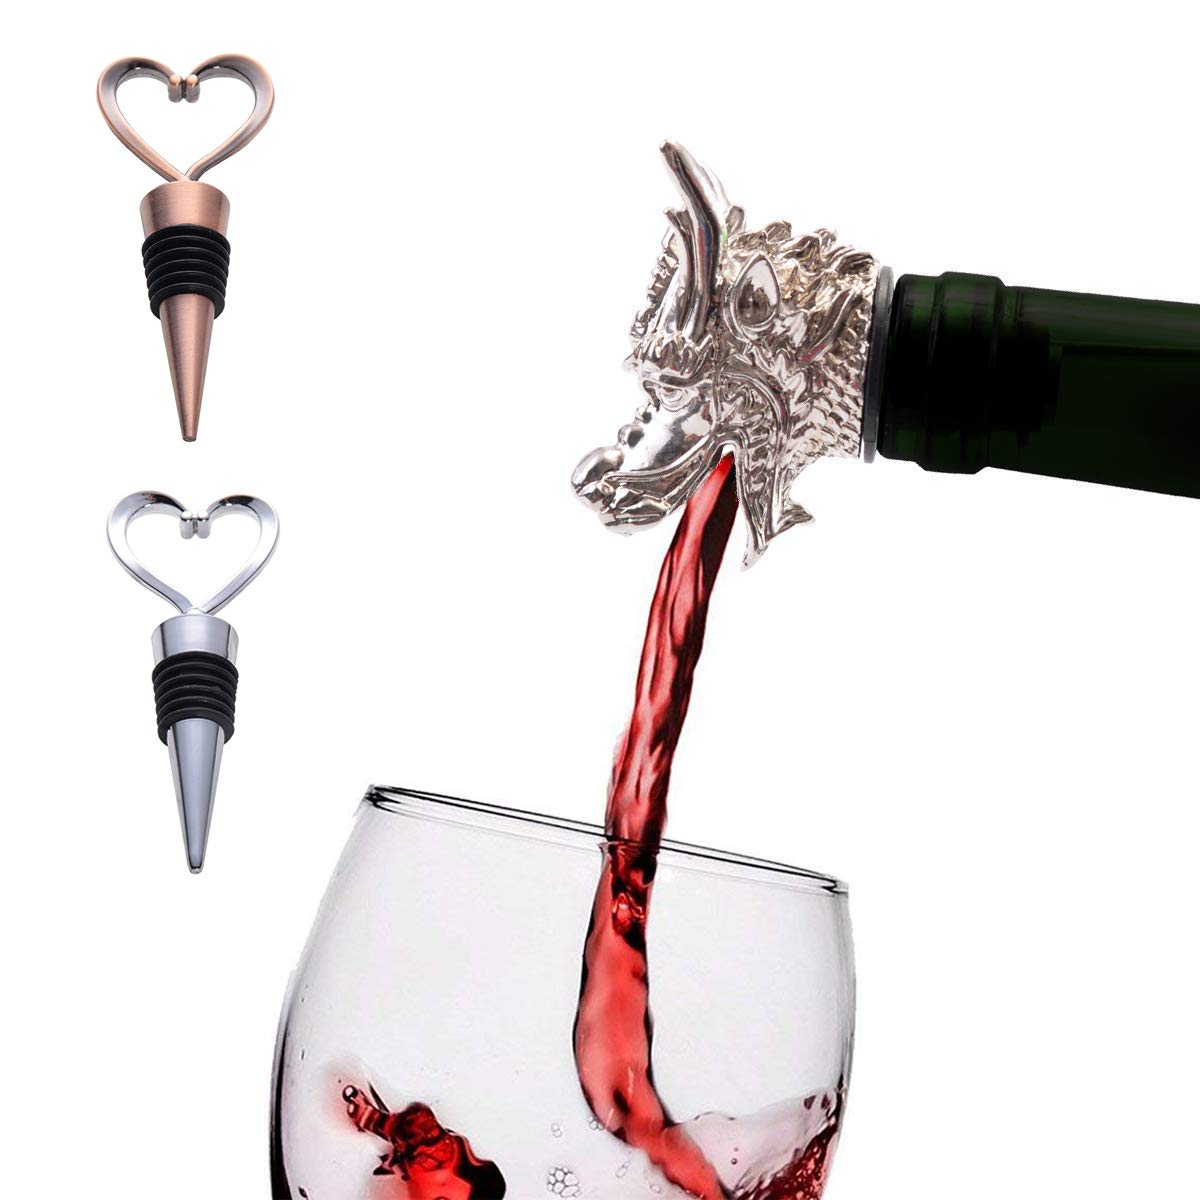 Premium Dragon Wine Bottle Aerator Pourer and 2 Wine Stoppers,made of Zinc Alloy and Silicone Rubber(Eco-Friendly),Fantastic Beast Reuseable Decanter Spout,Wine Server Tools Gifts (Dragon)